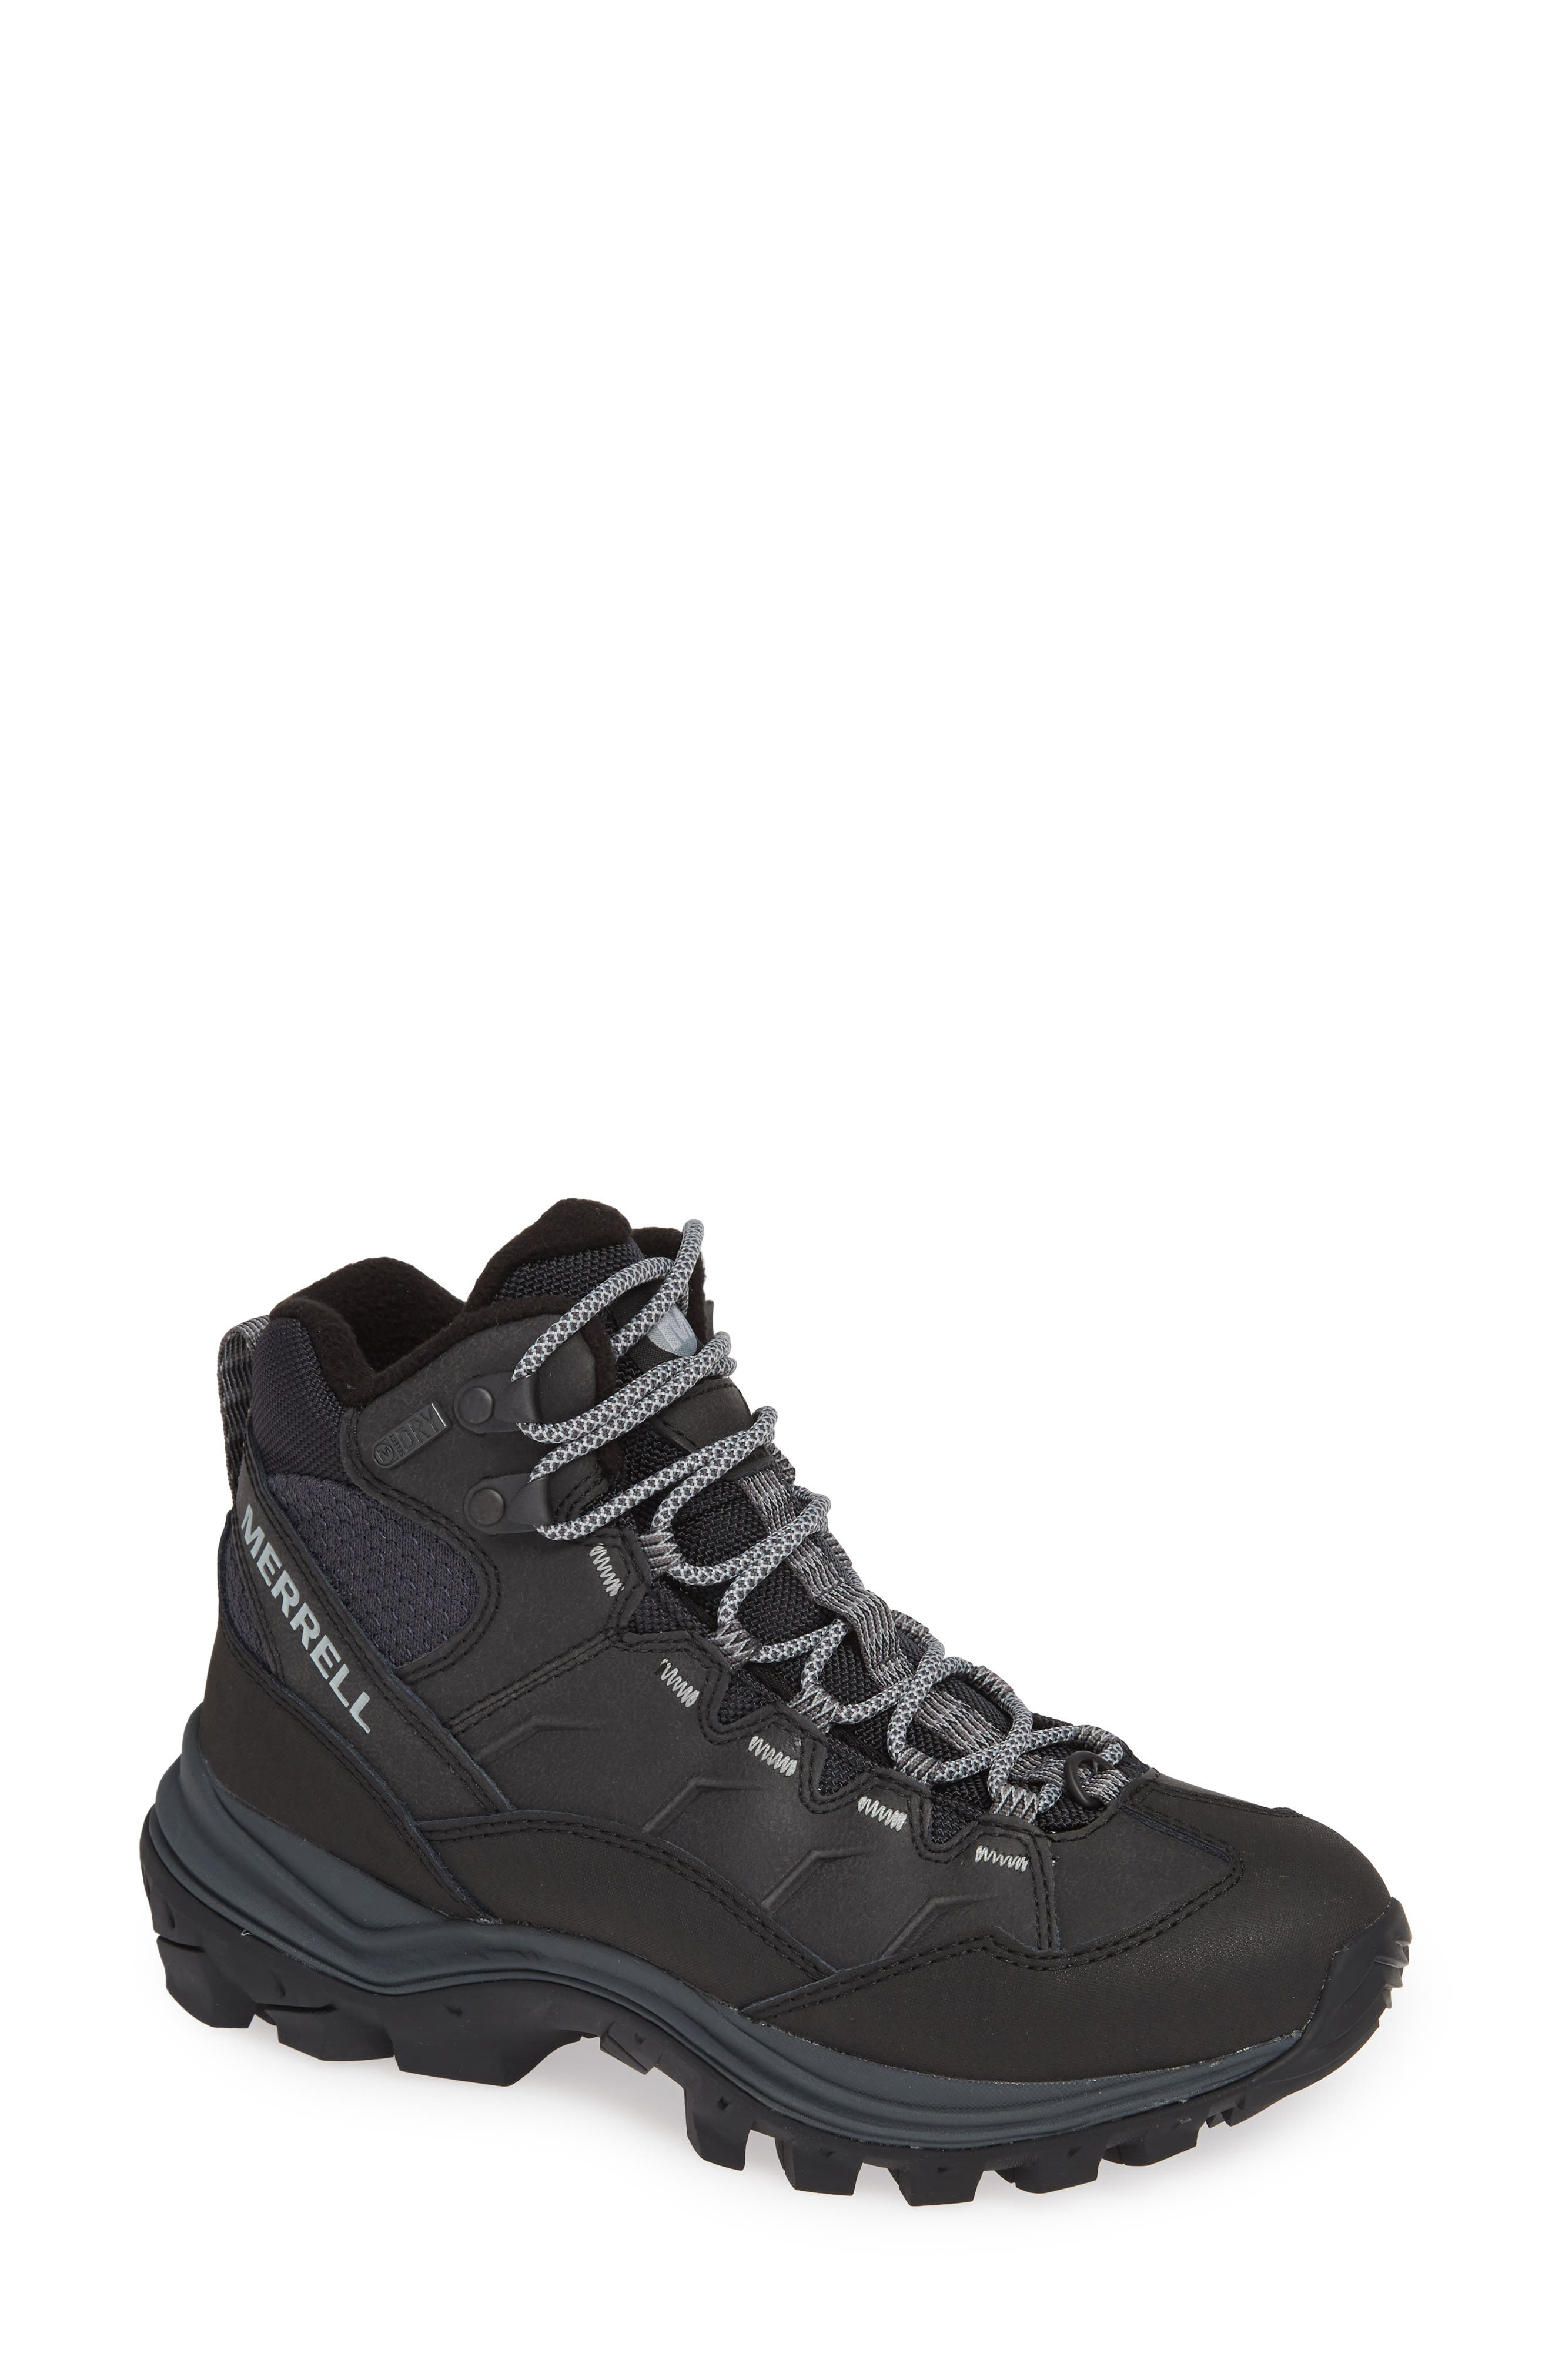 Thermo Chill Waterproof Snow Boot,                             Main thumbnail 1, color,                             BLACK LEATHER